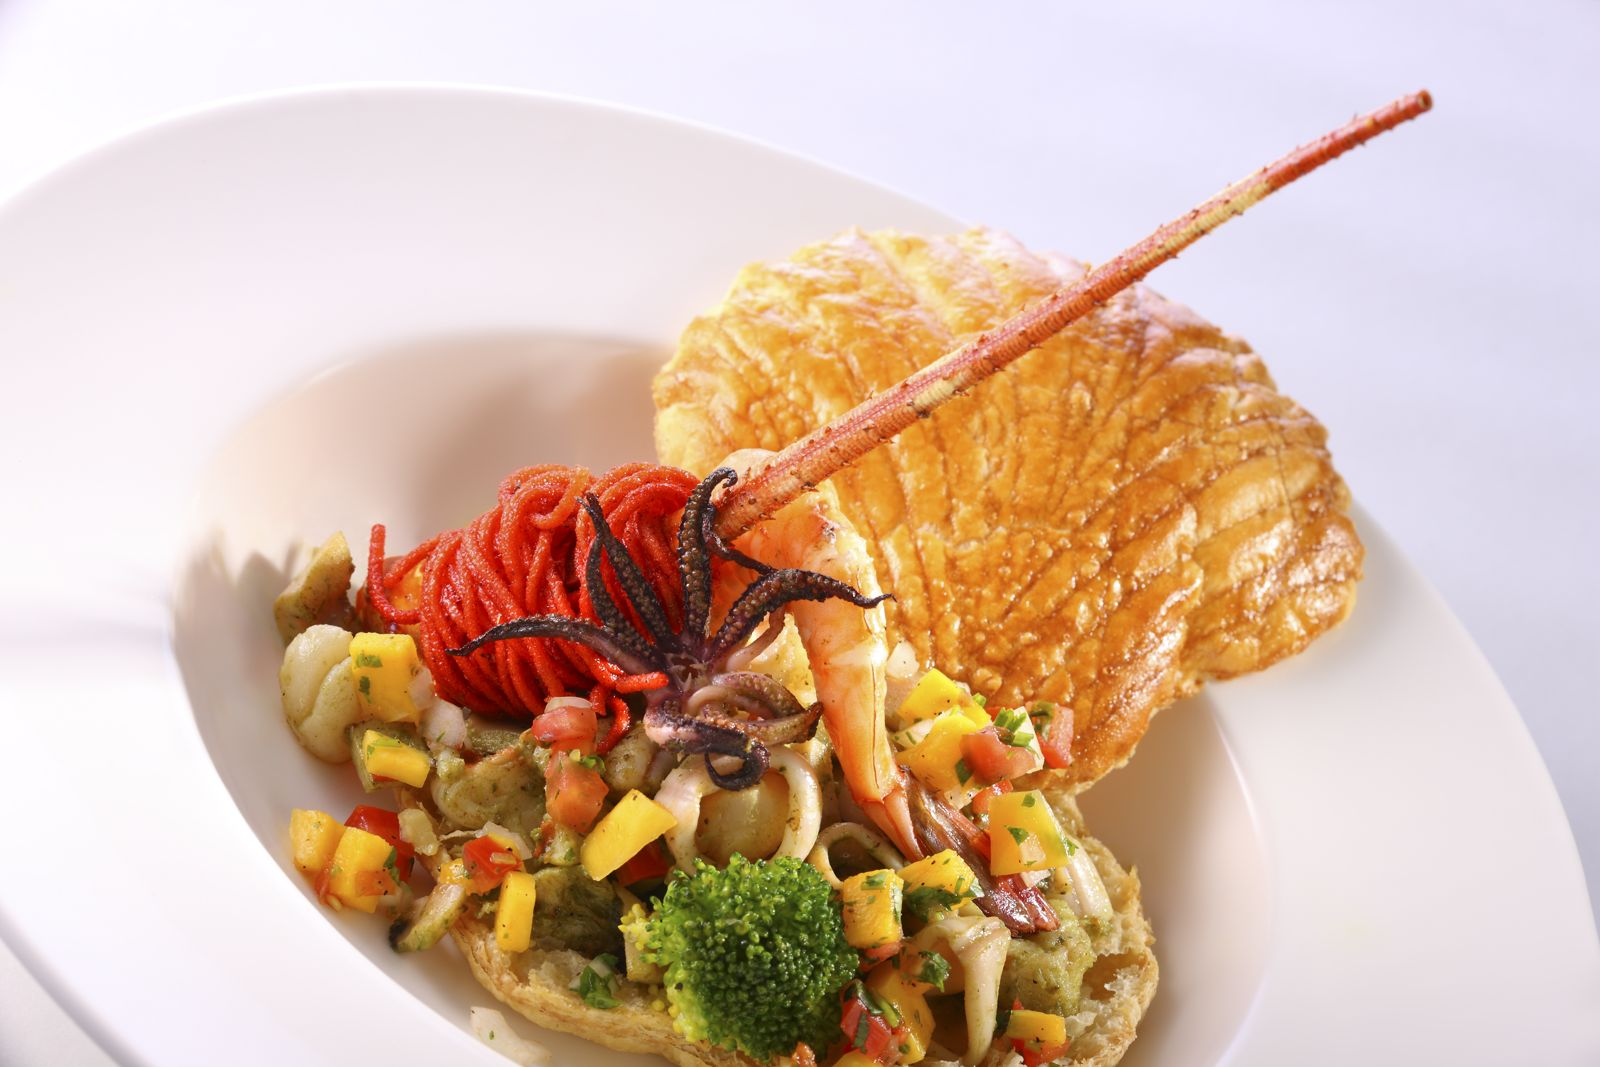 Seafood thousand leaves with a safran creamy sauce